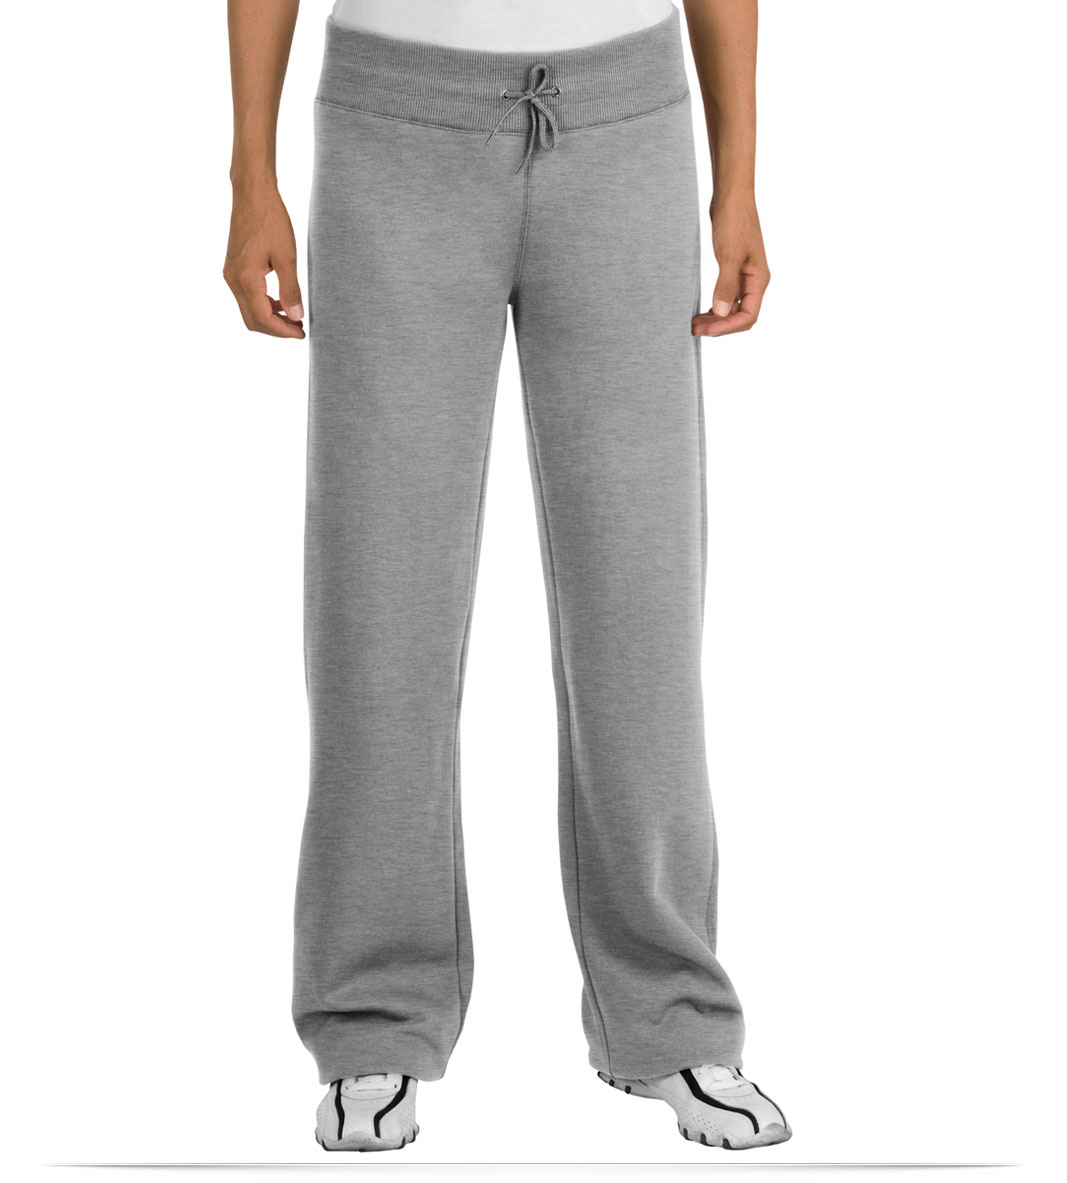 Design your own ladies fleece pant online at allstar logo for Design your own athletic shirt